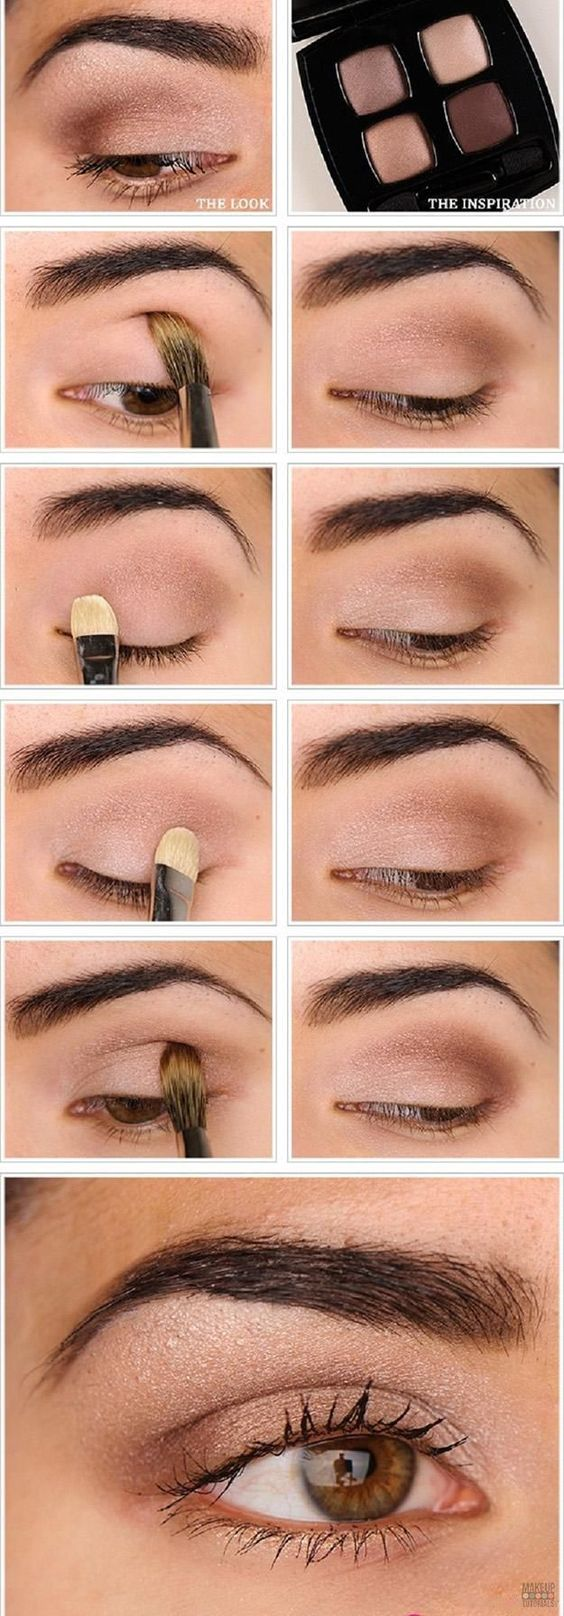 15 Simple Eye Makeup Ideas For Work Outfits Pretty Designs